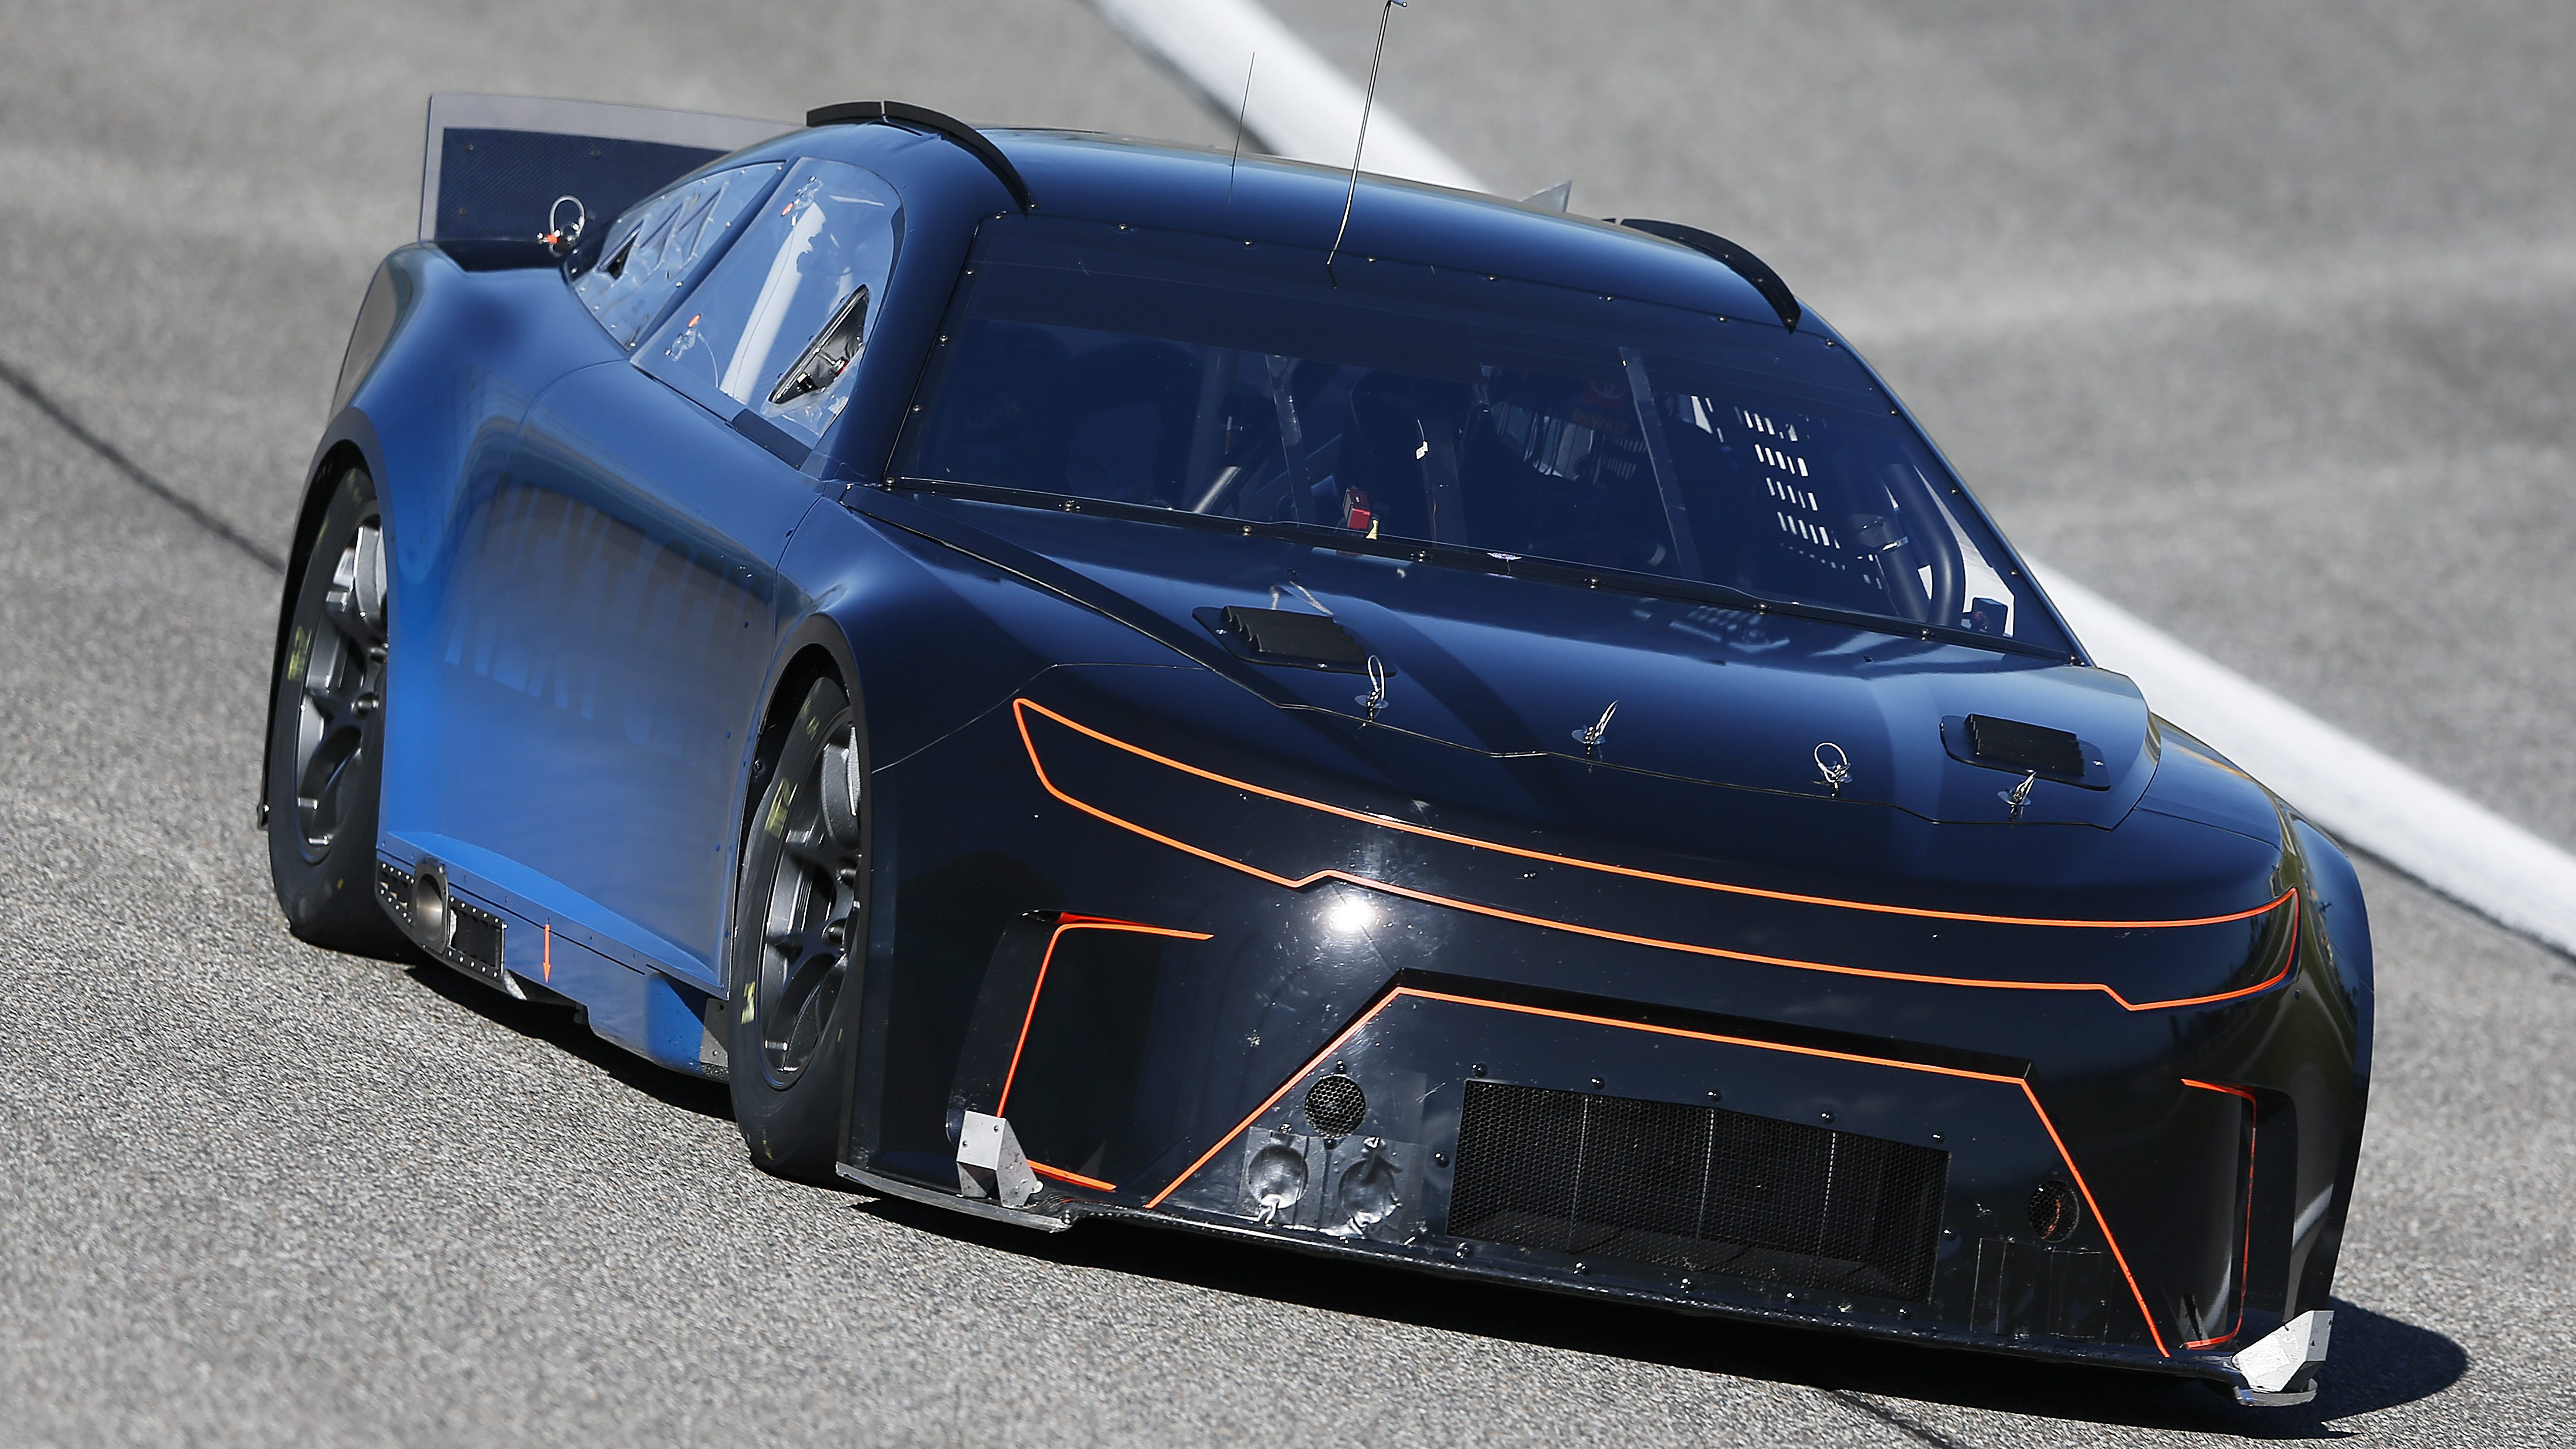 Report: Debut of Next Gen car to be delayed - NASCAR Talk | NBC Sports